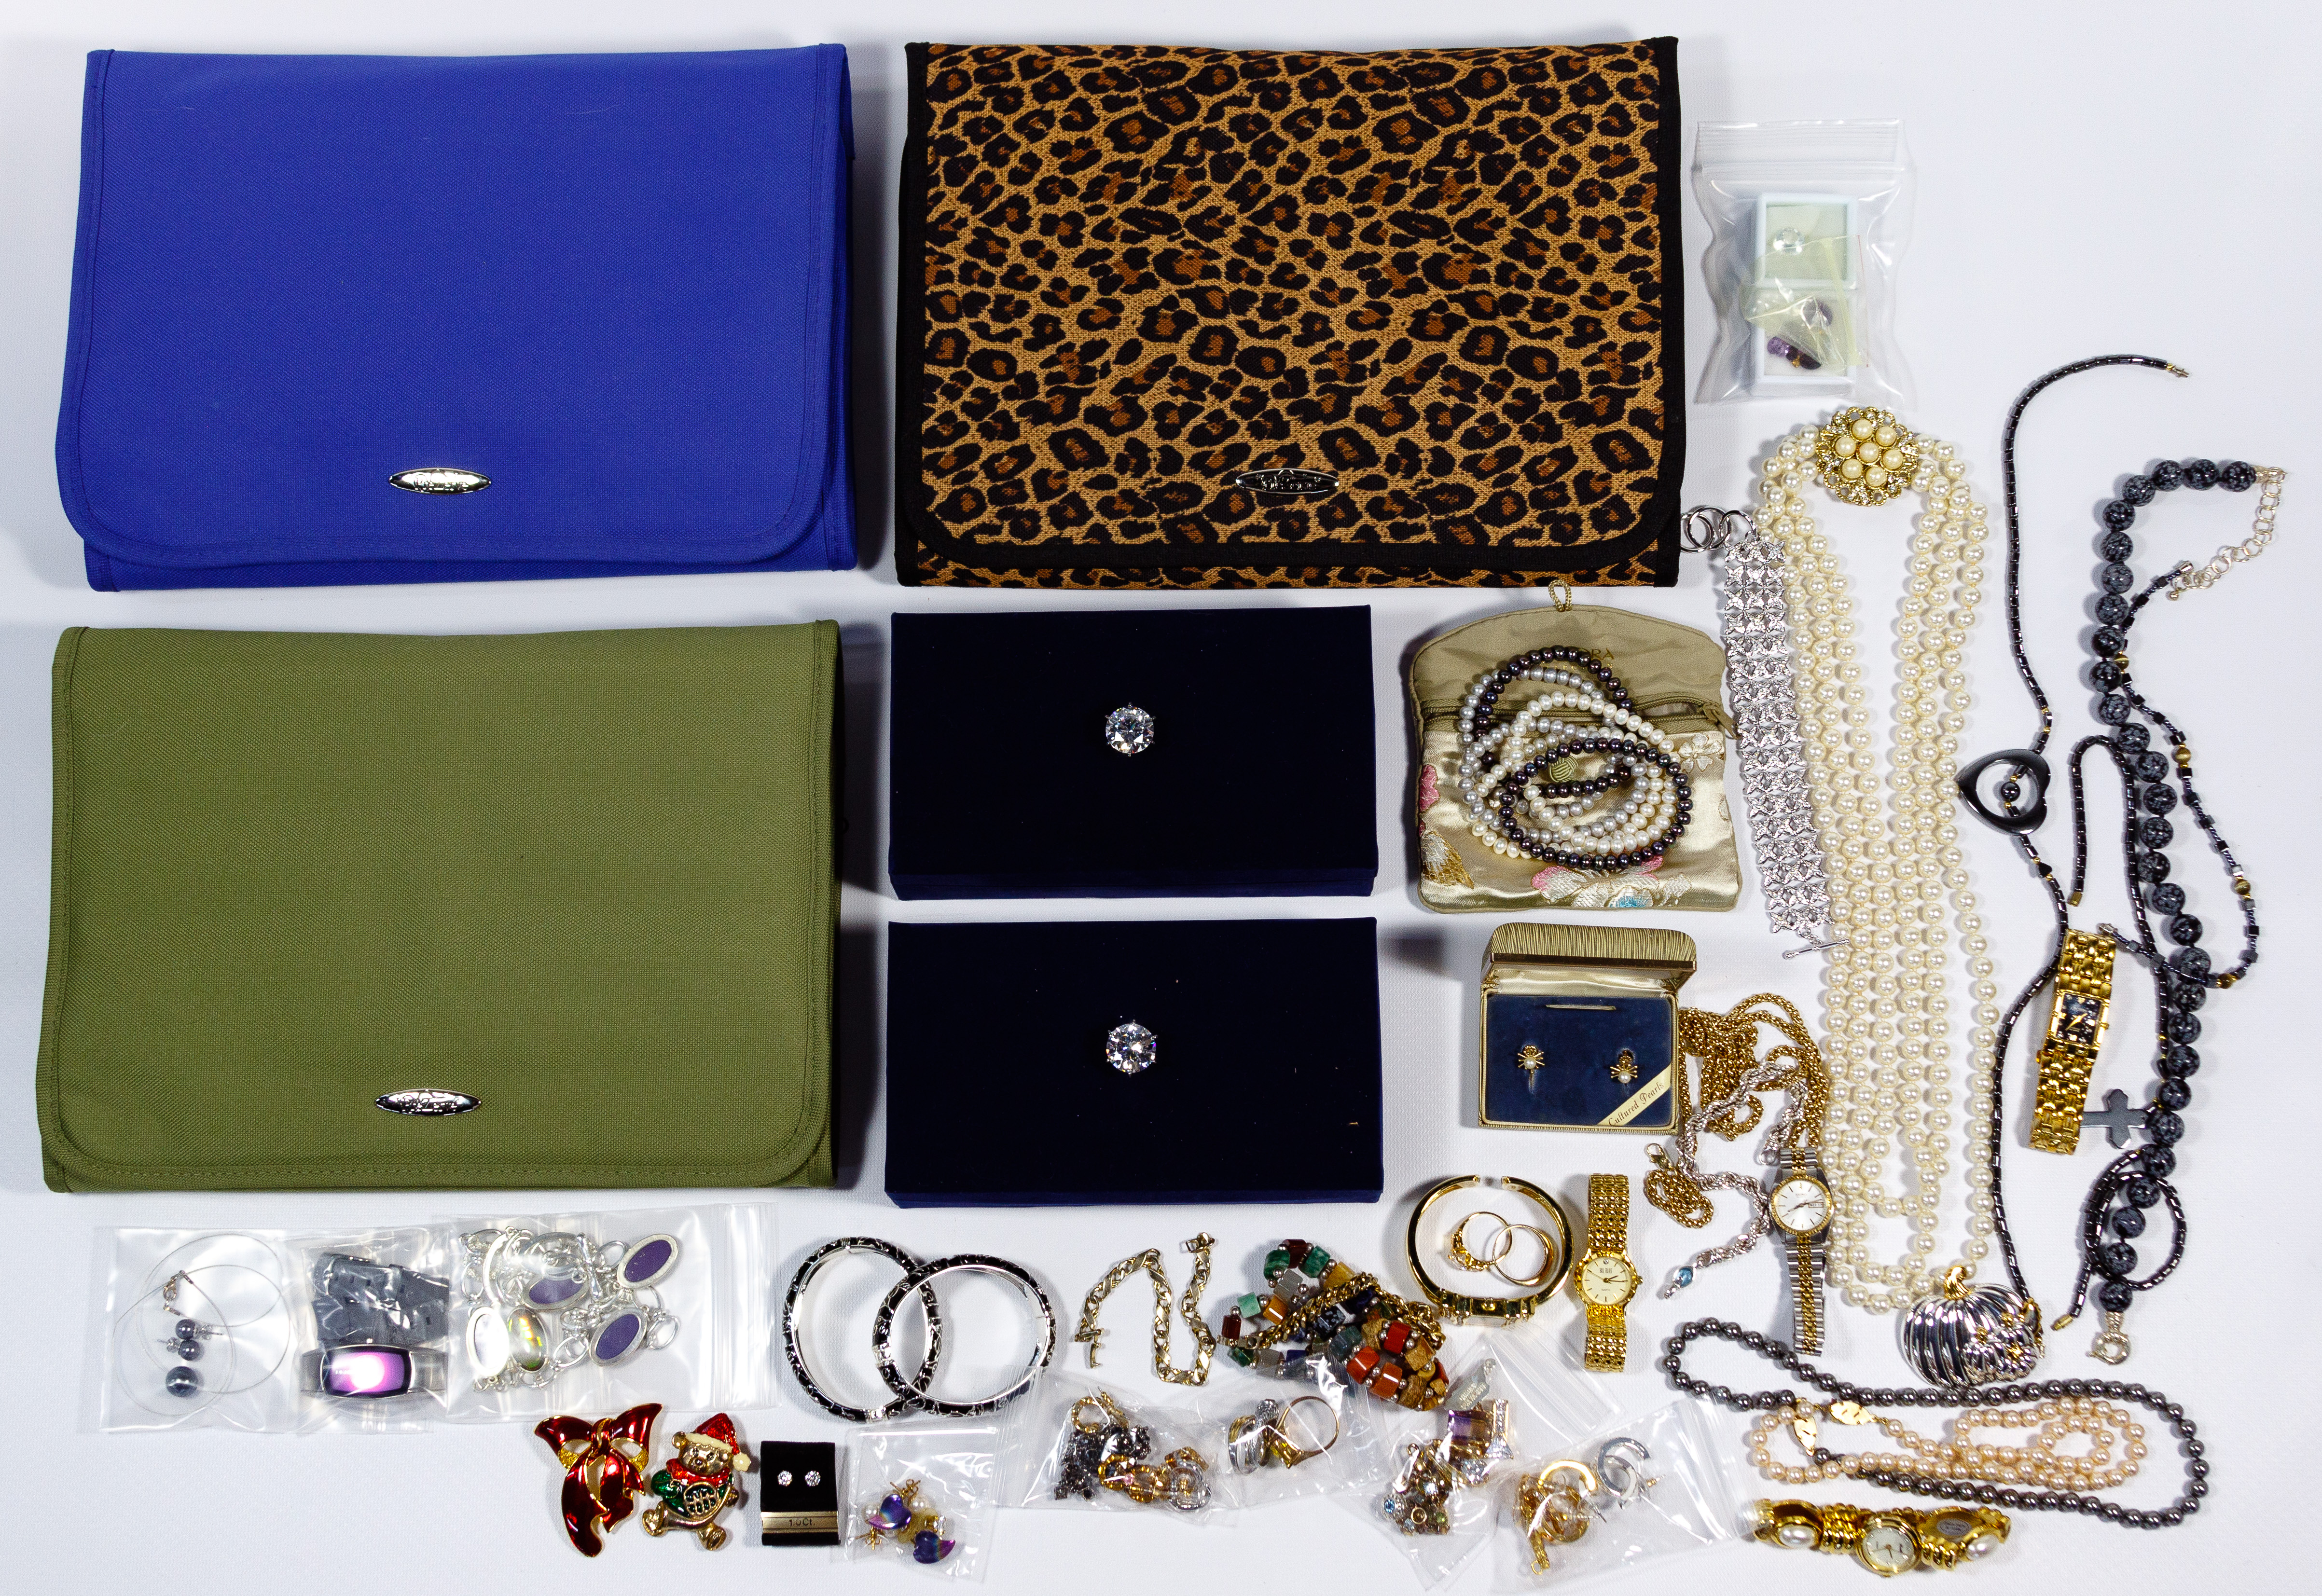 Costume Jewelry And Storage Bag Assortment Sold At Auction On 18th October Bidsquare